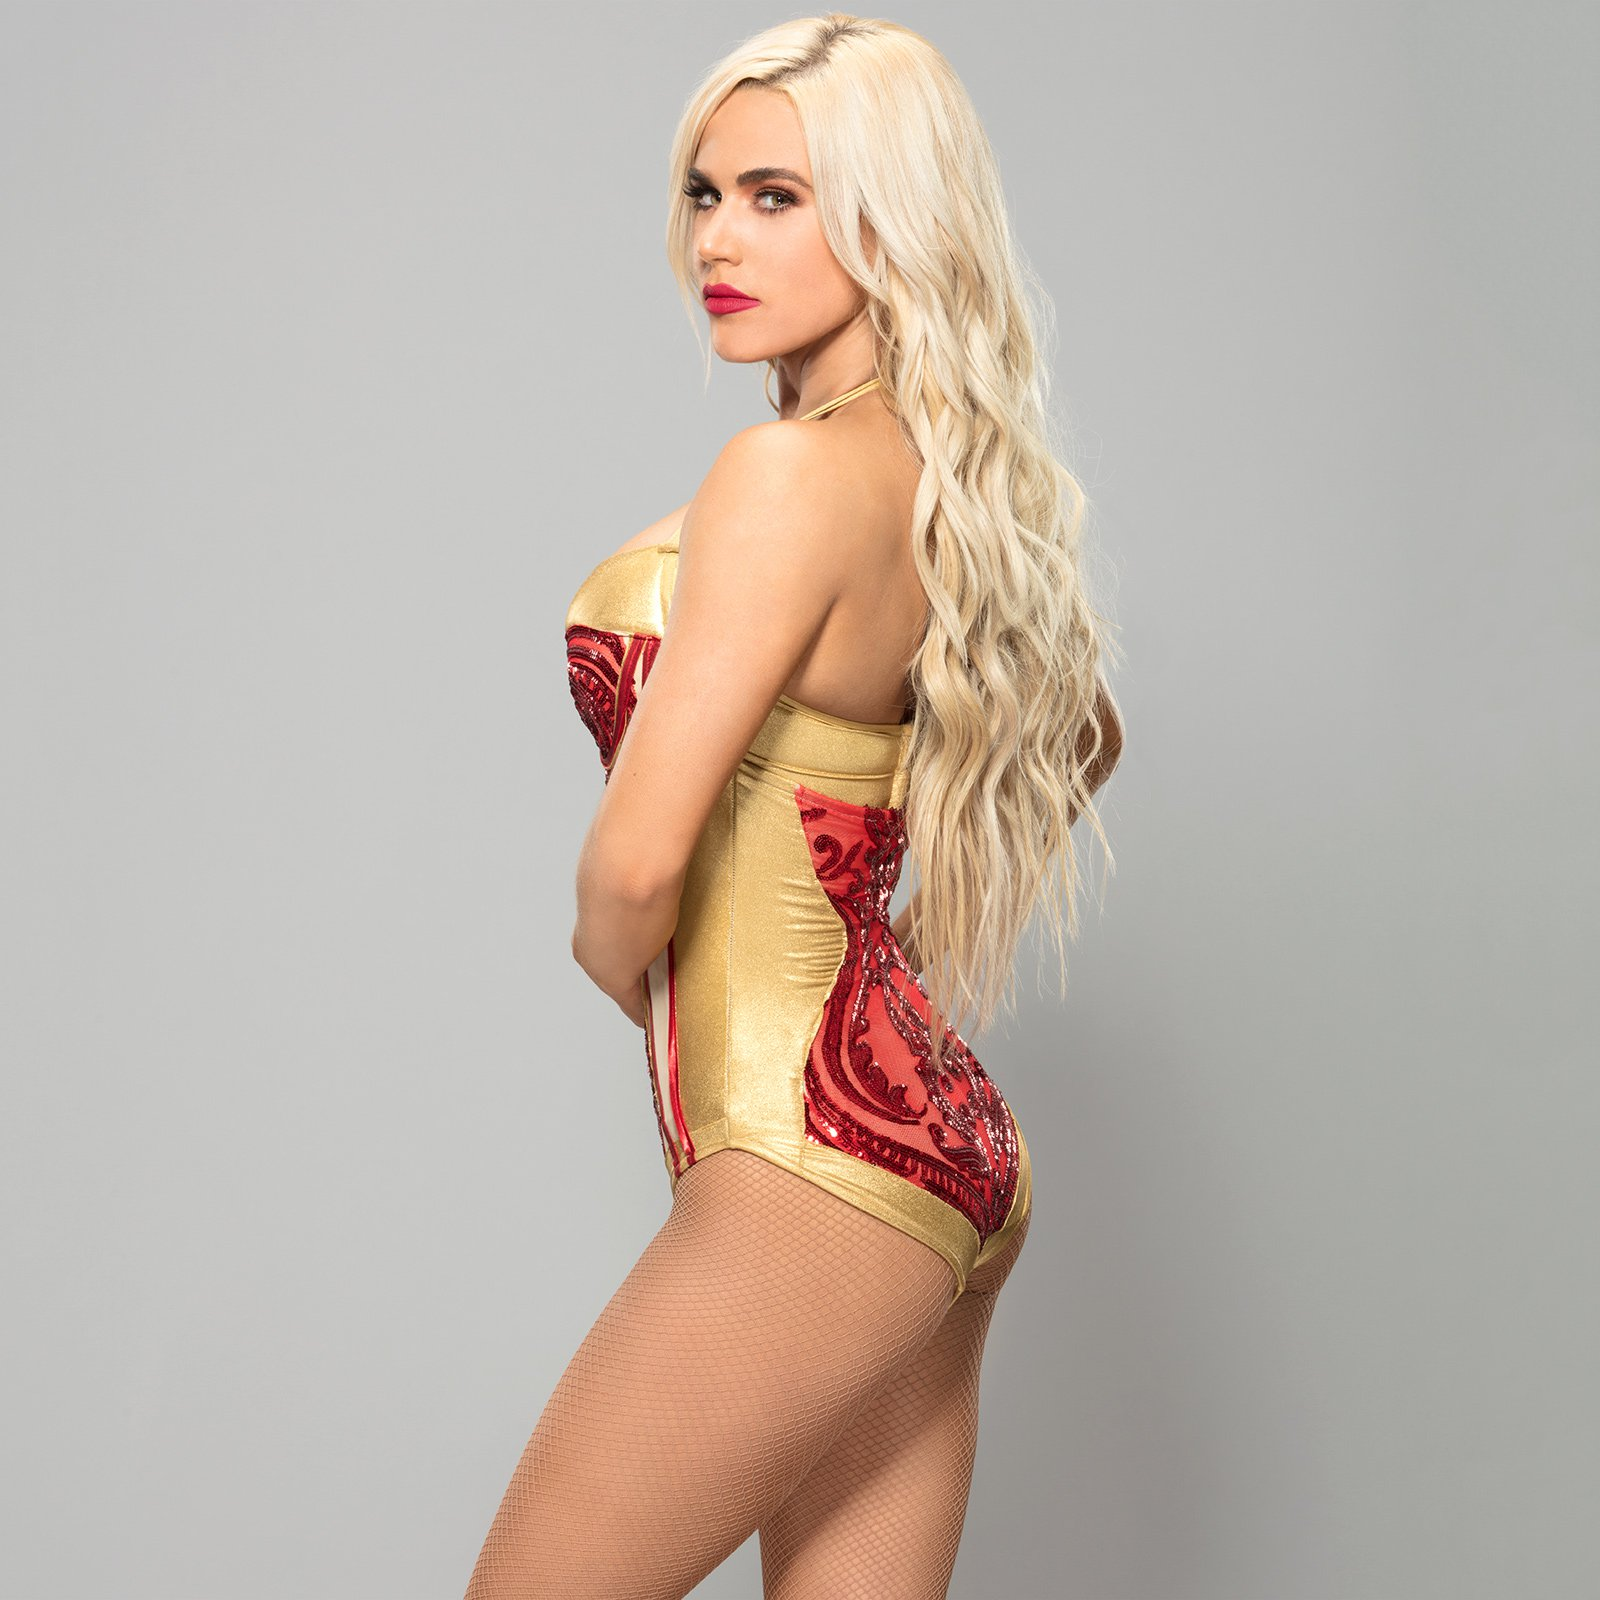 Lana WWE Sexy Revealing Lingerie Photos Collection | #The